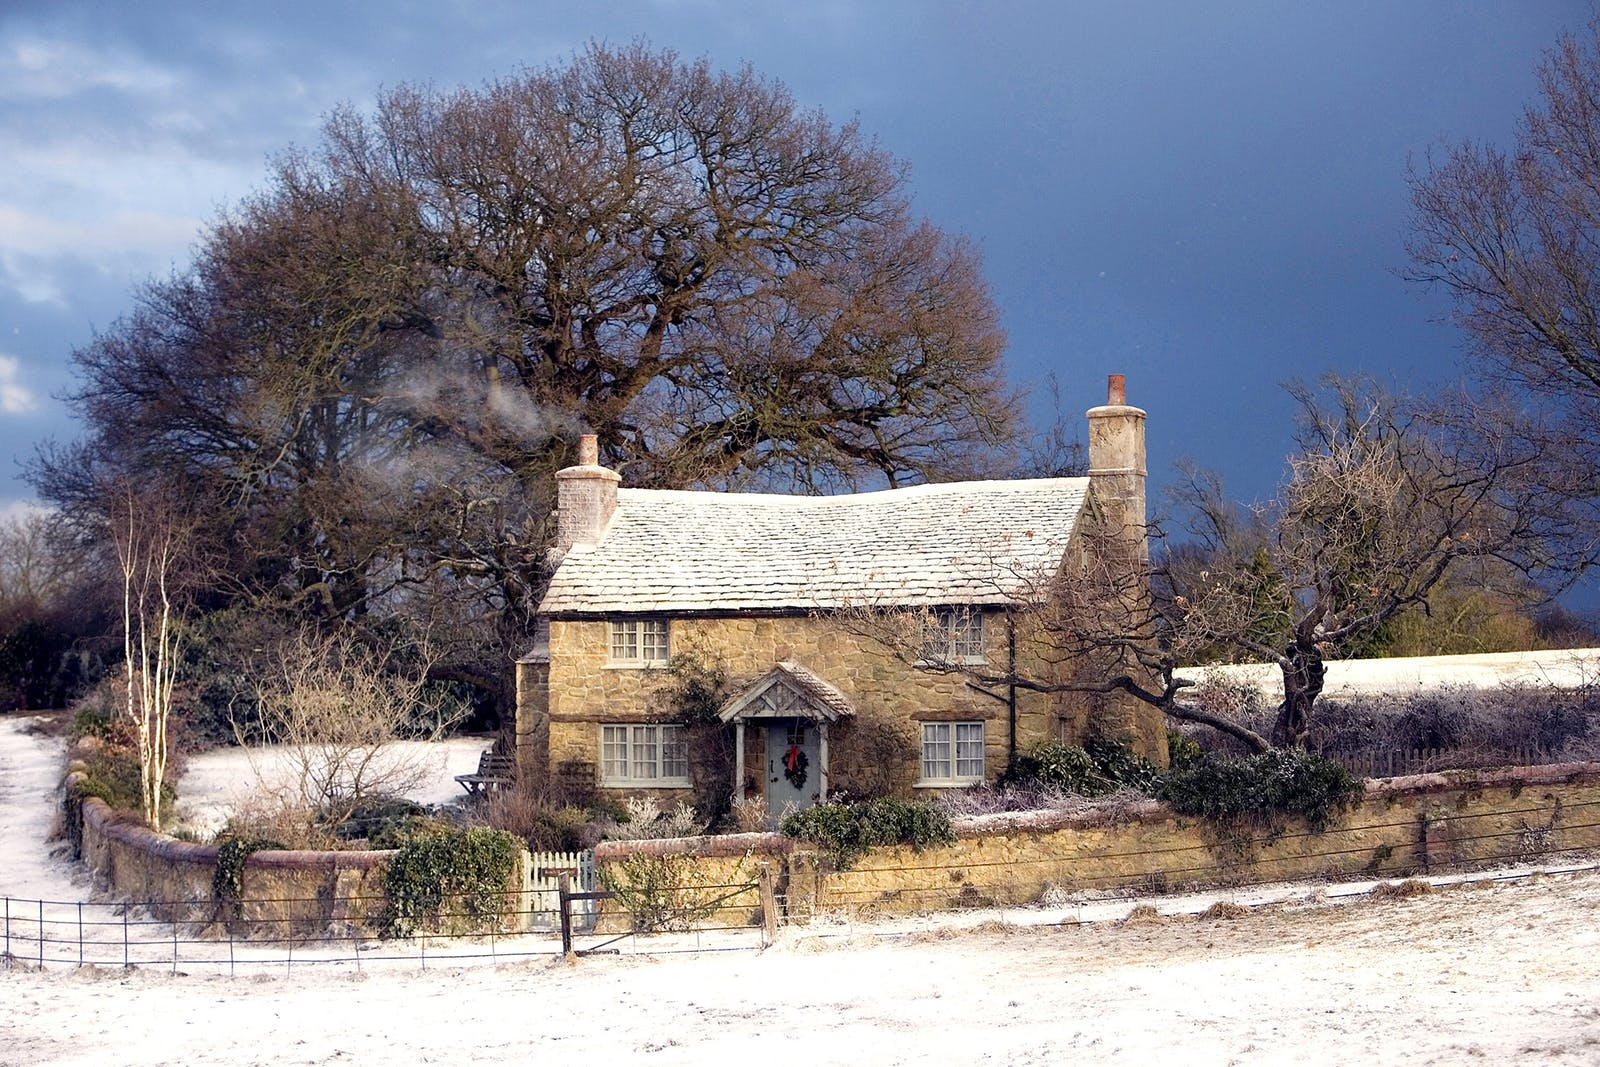 English cottage covered in snow, famous from the movie The Holiday